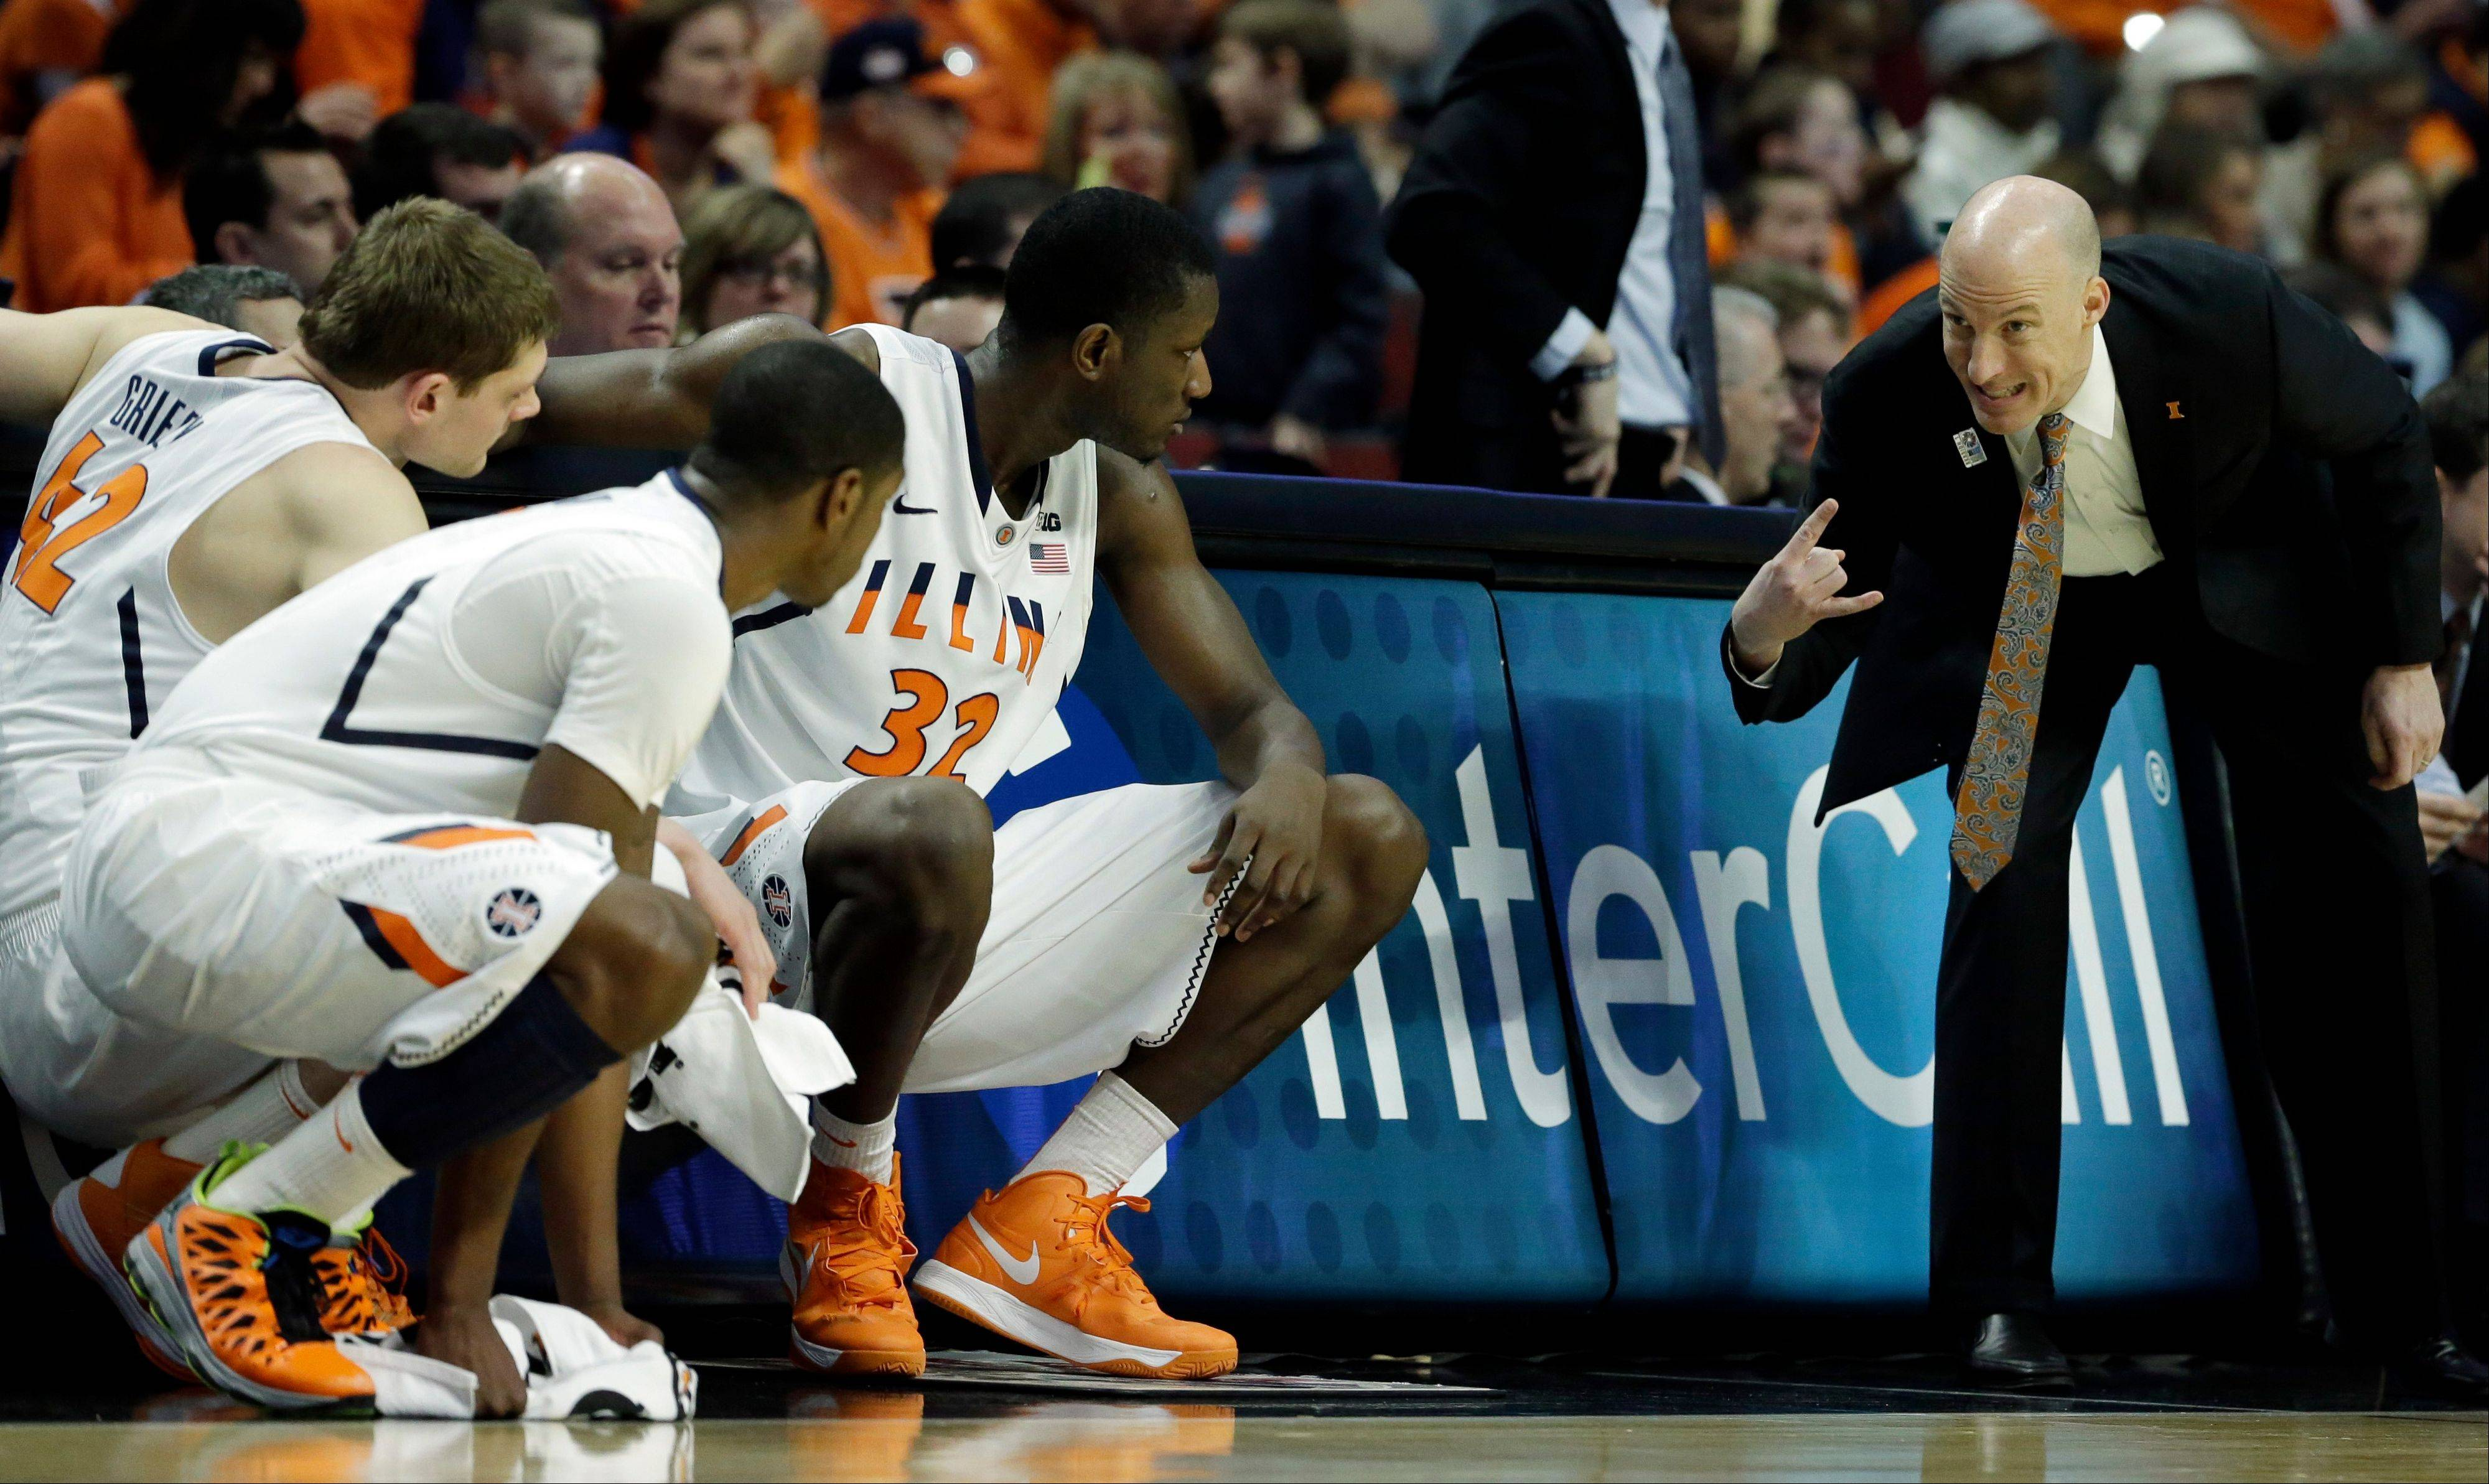 Groce's perpetual motion moves Illini forward